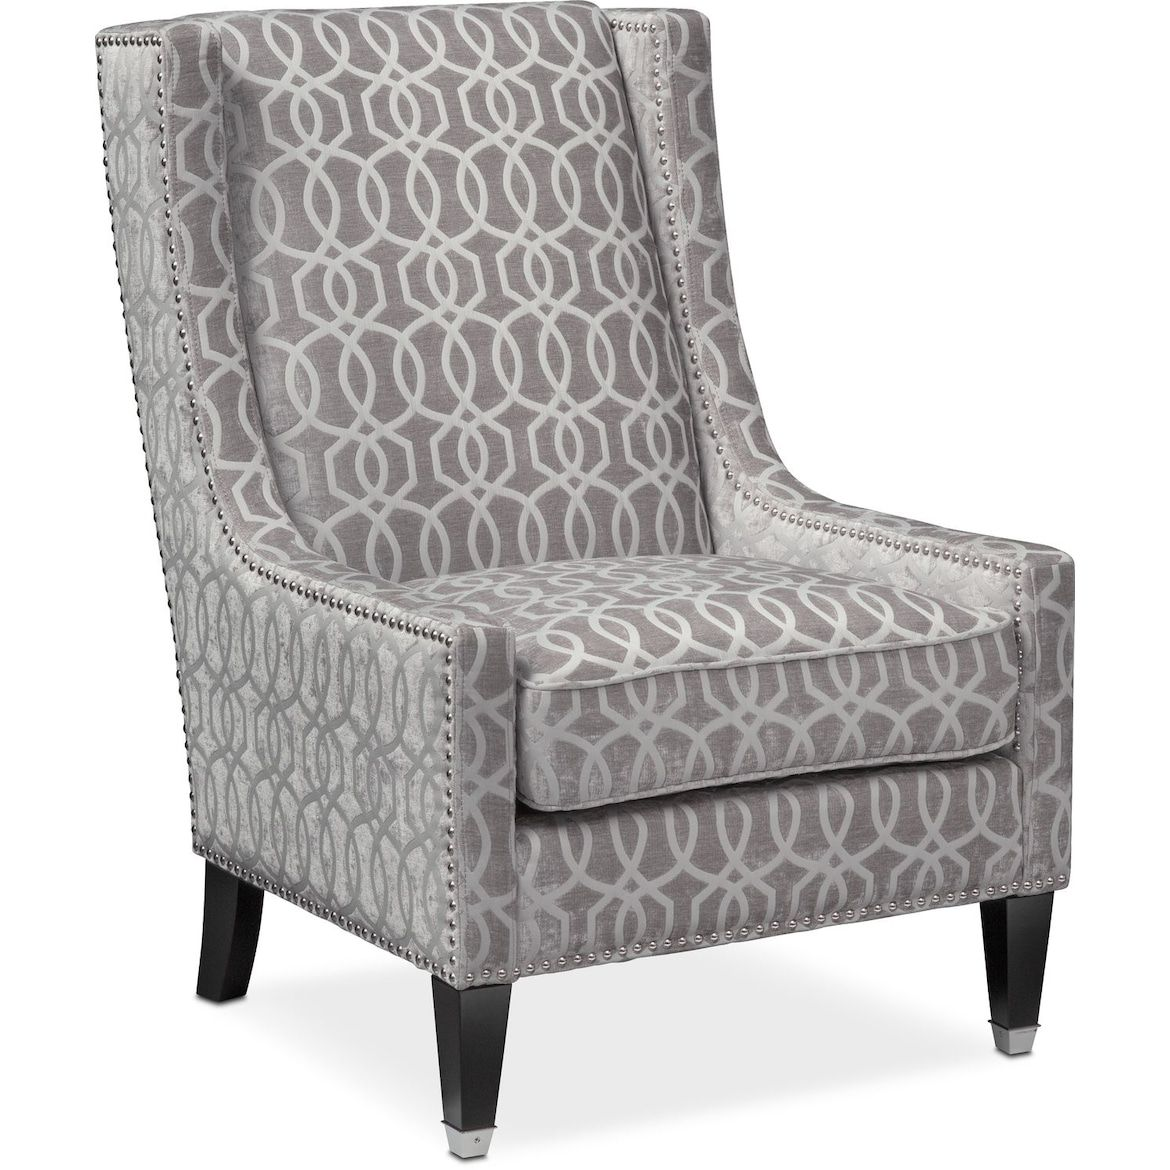 Venn Accent Chair In 2020 Accent Chairs Furniture Ashley Furniture Outlet